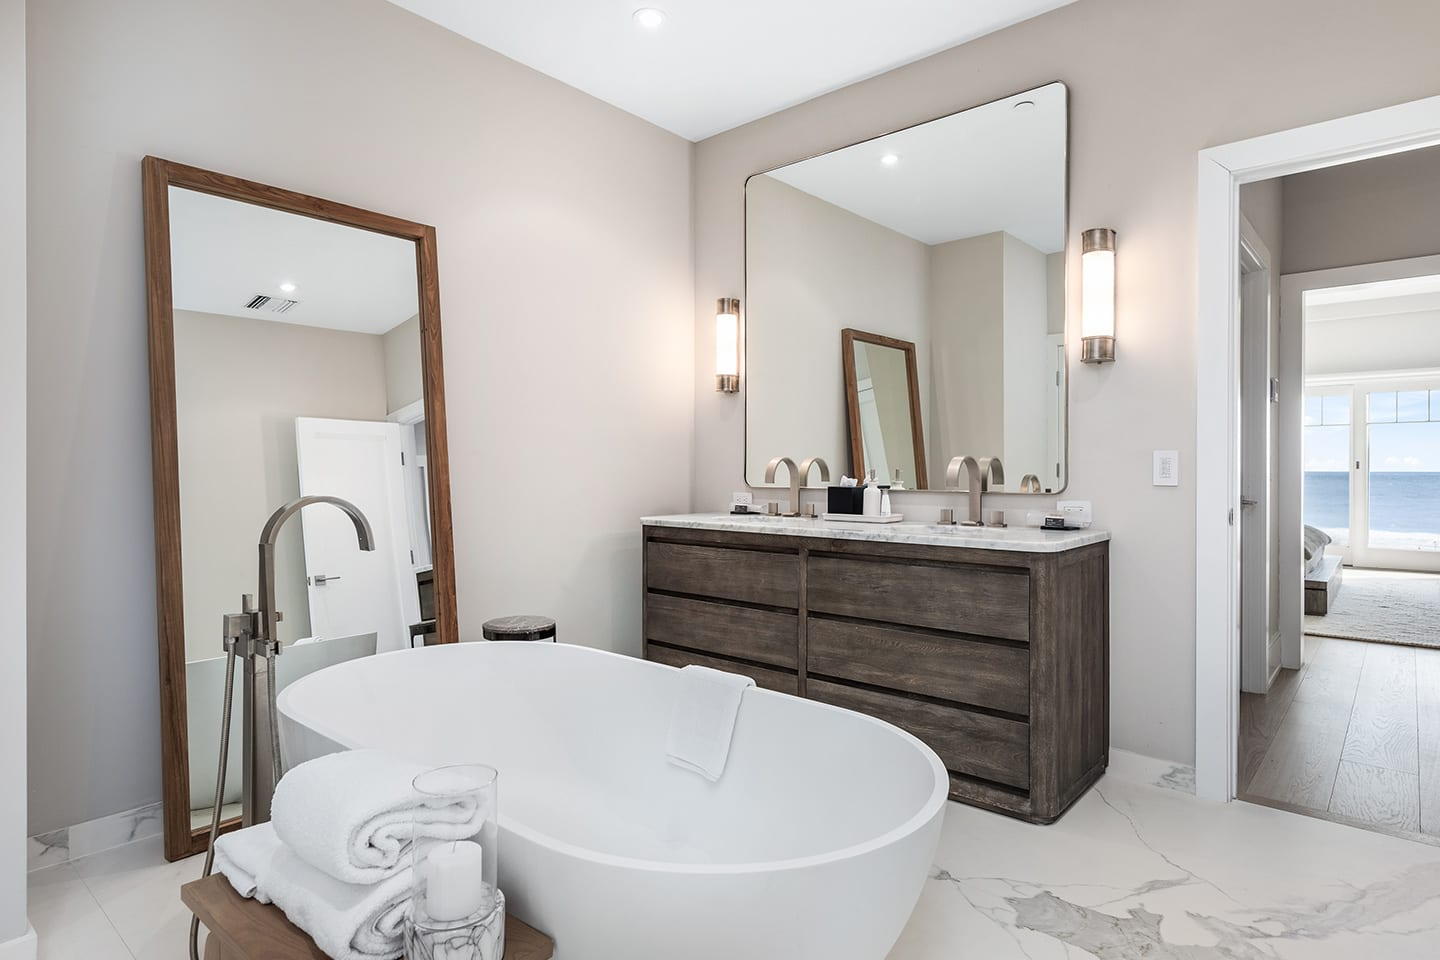 Salt Sea 5 Bathroom with marble floors and freestanding bathtub